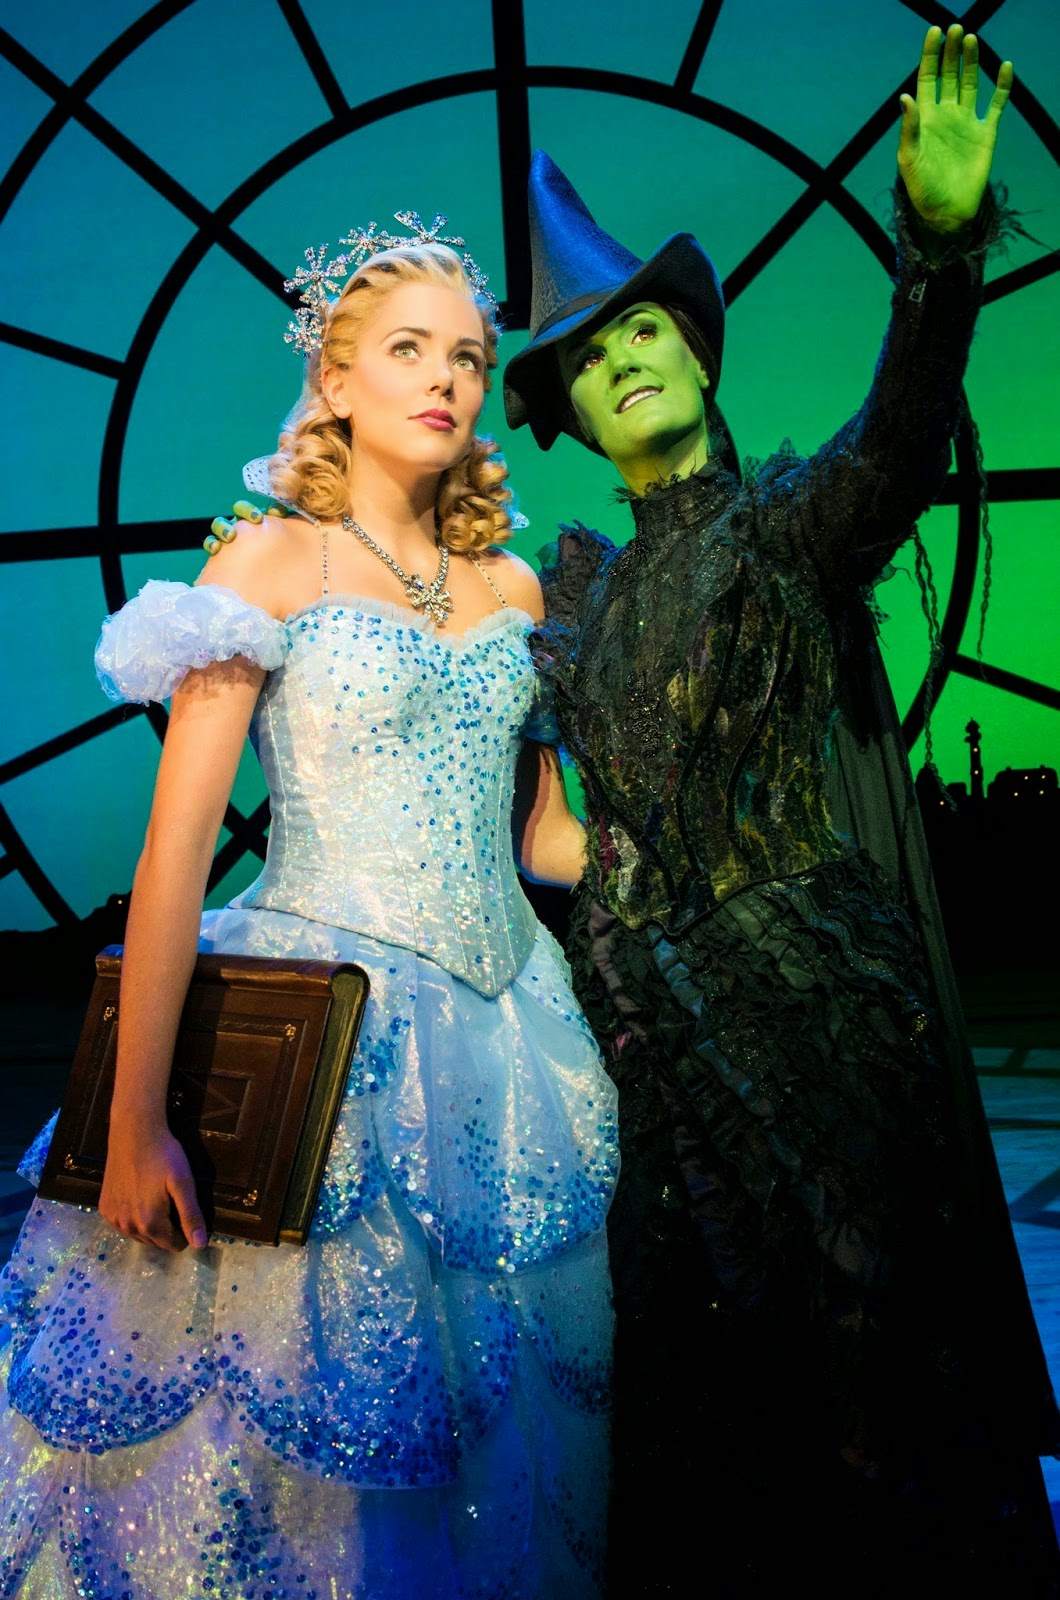 wicked live theatre review Buy wicked (touring) tickets from the official ticketmastercom site find wicked (touring) schedule, reviews and photos.